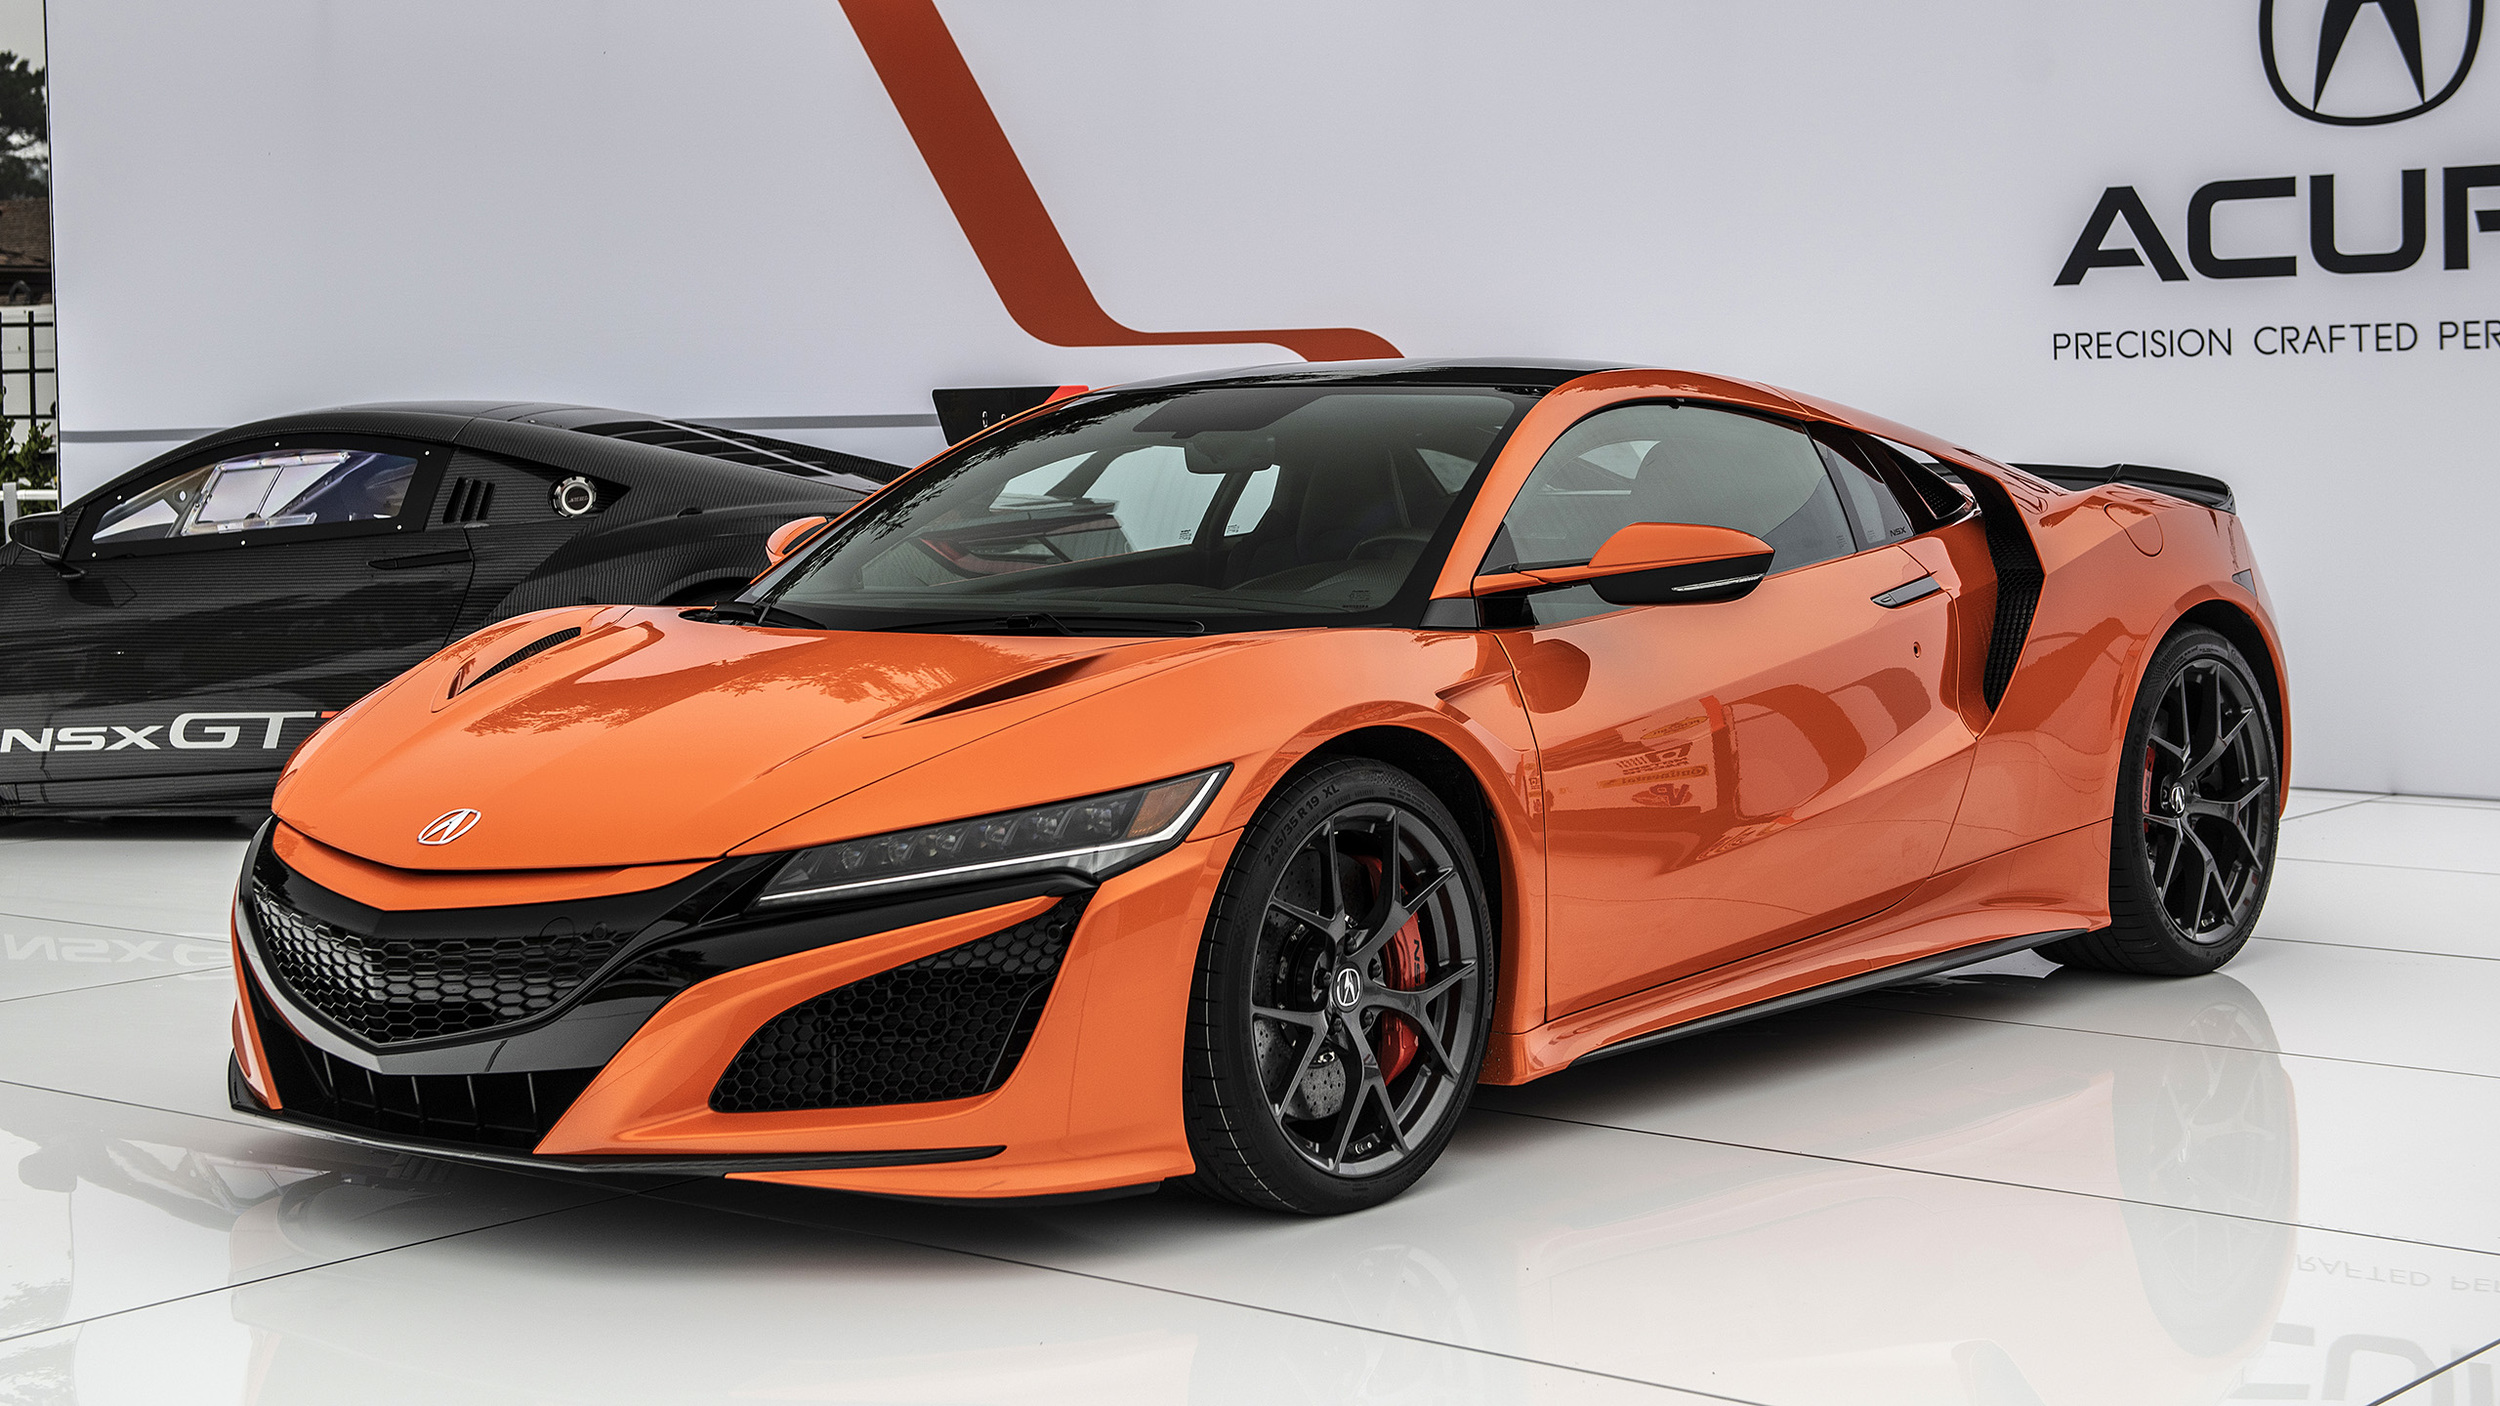 Refreshed 2019 Acura NSX revealed in California | Autoblog